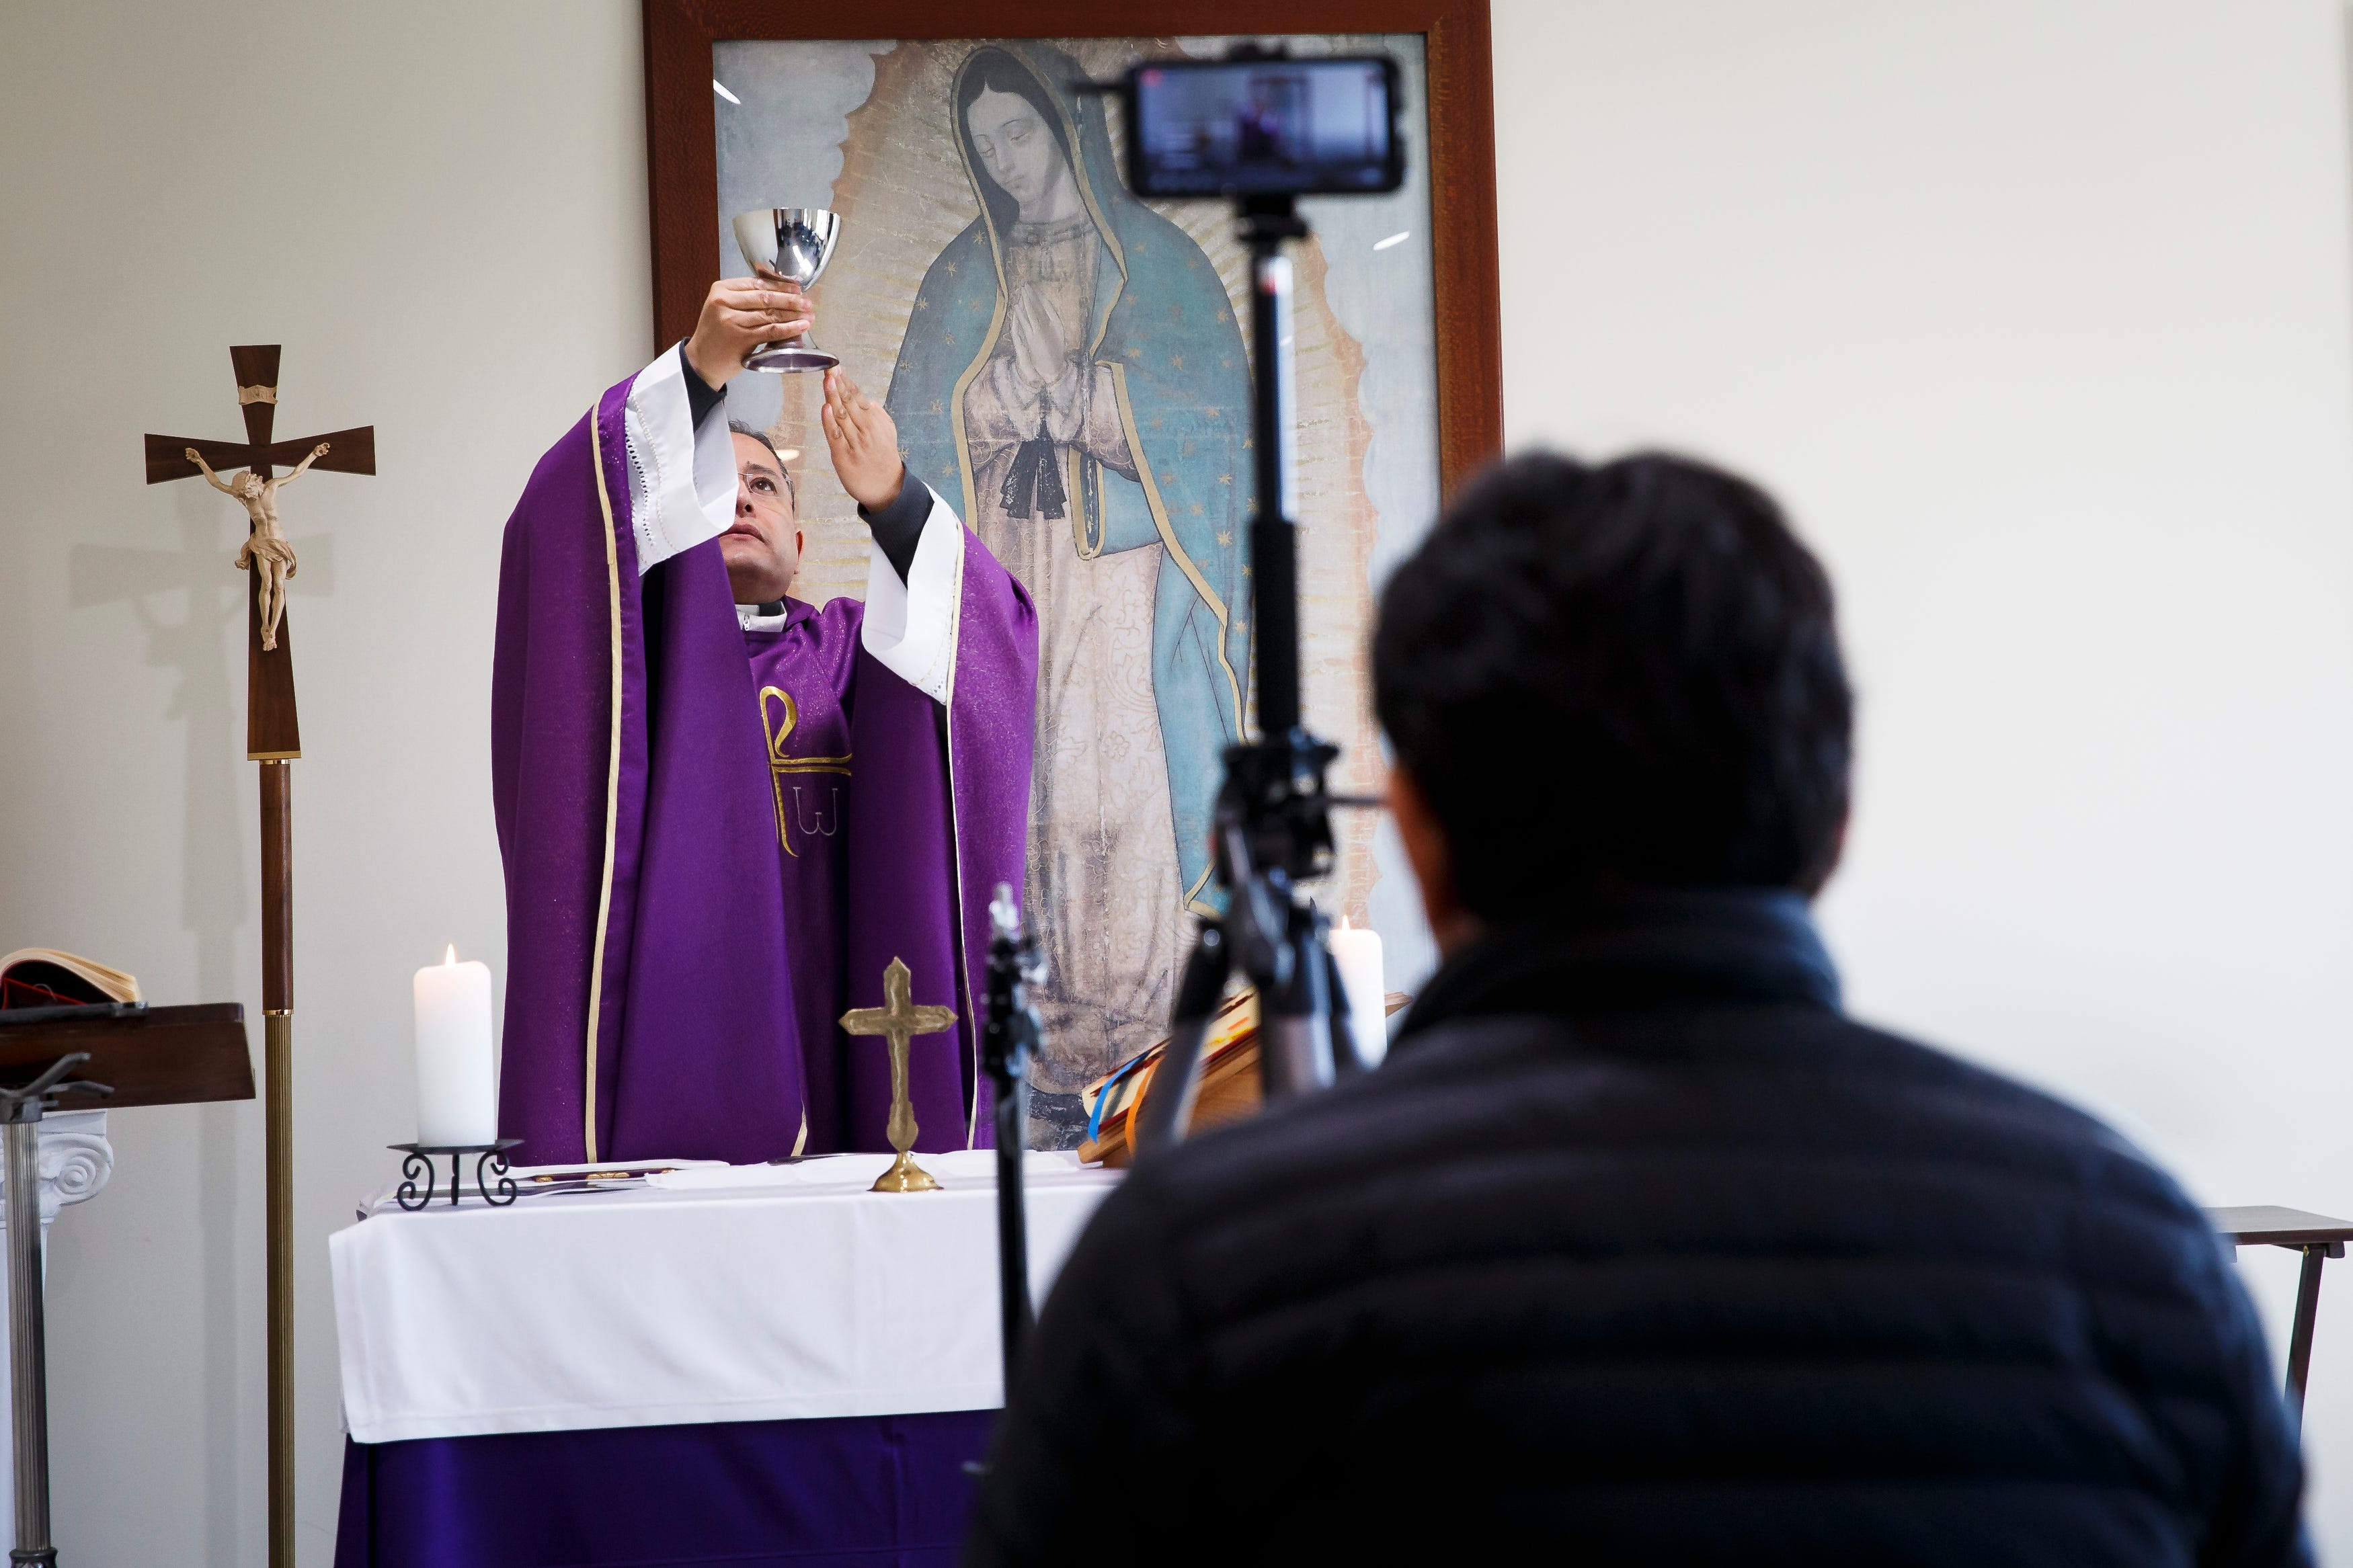 The Rev. Fabian Moncada celebrates Mass in a makeshift chapel as it's streamed live to followers of Our Lady of the Americas Church on Saturday, March 21, 2020, in Des Moines.